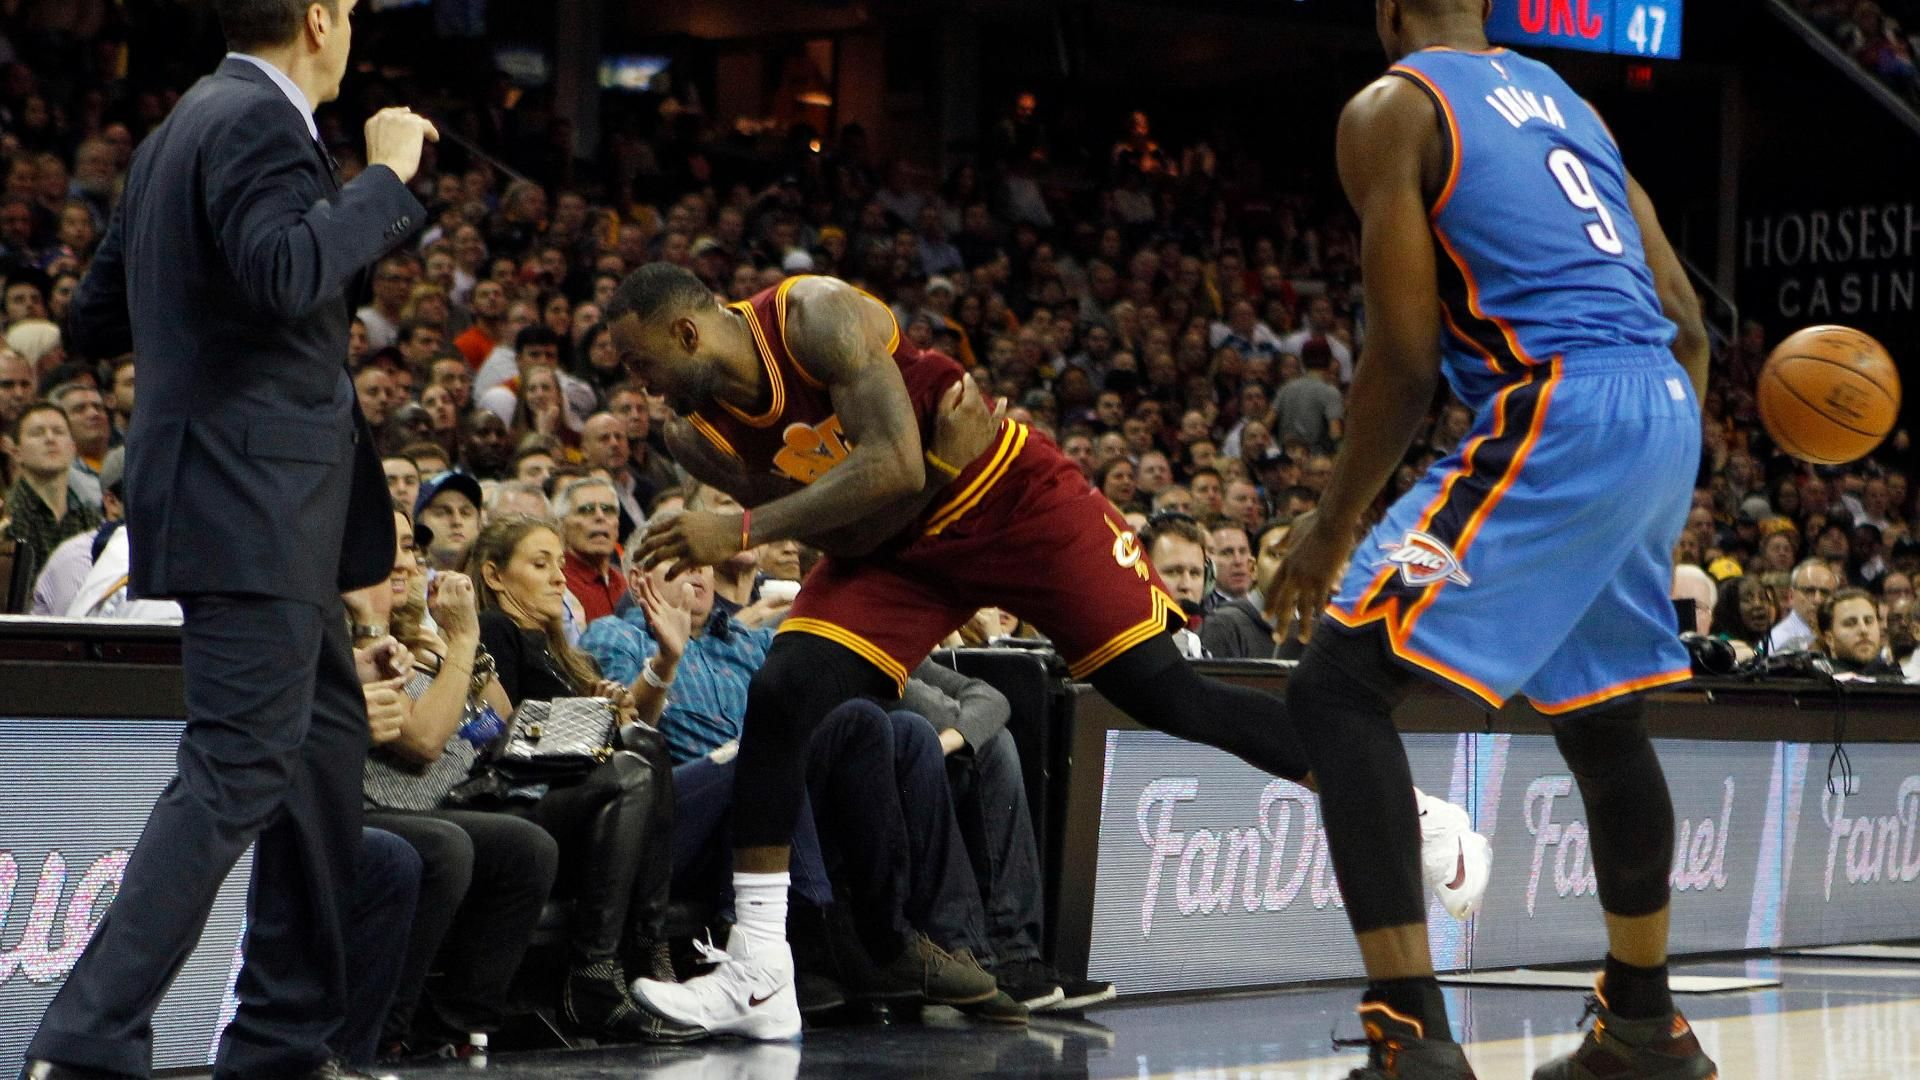 Jason Day's wife accidentally injured by LeBron James